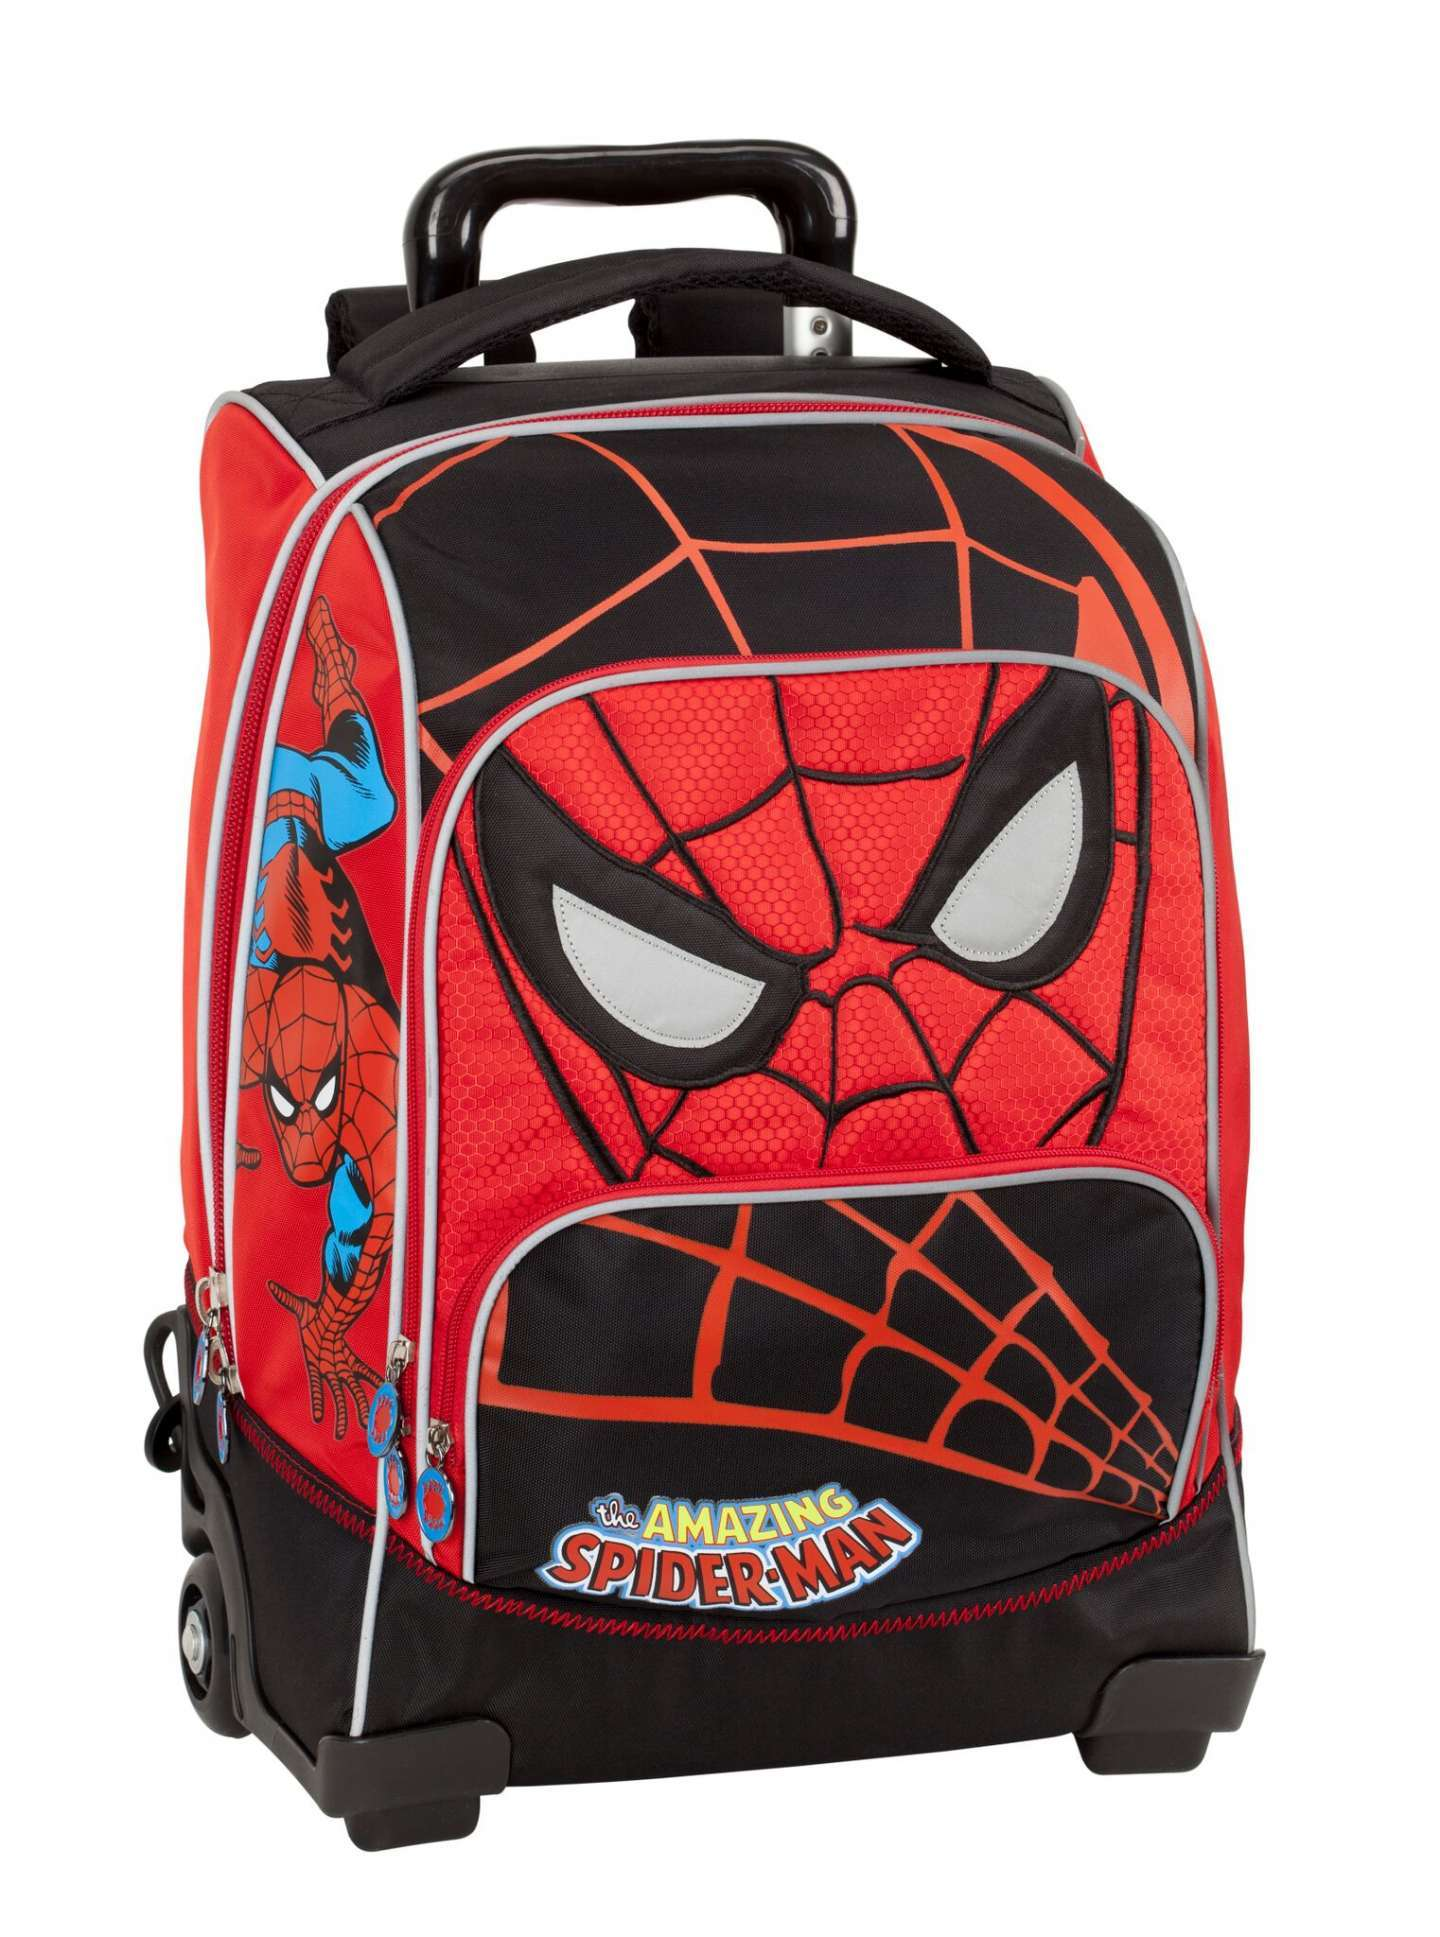 ZAINO TROLLEY SPIDERMAN